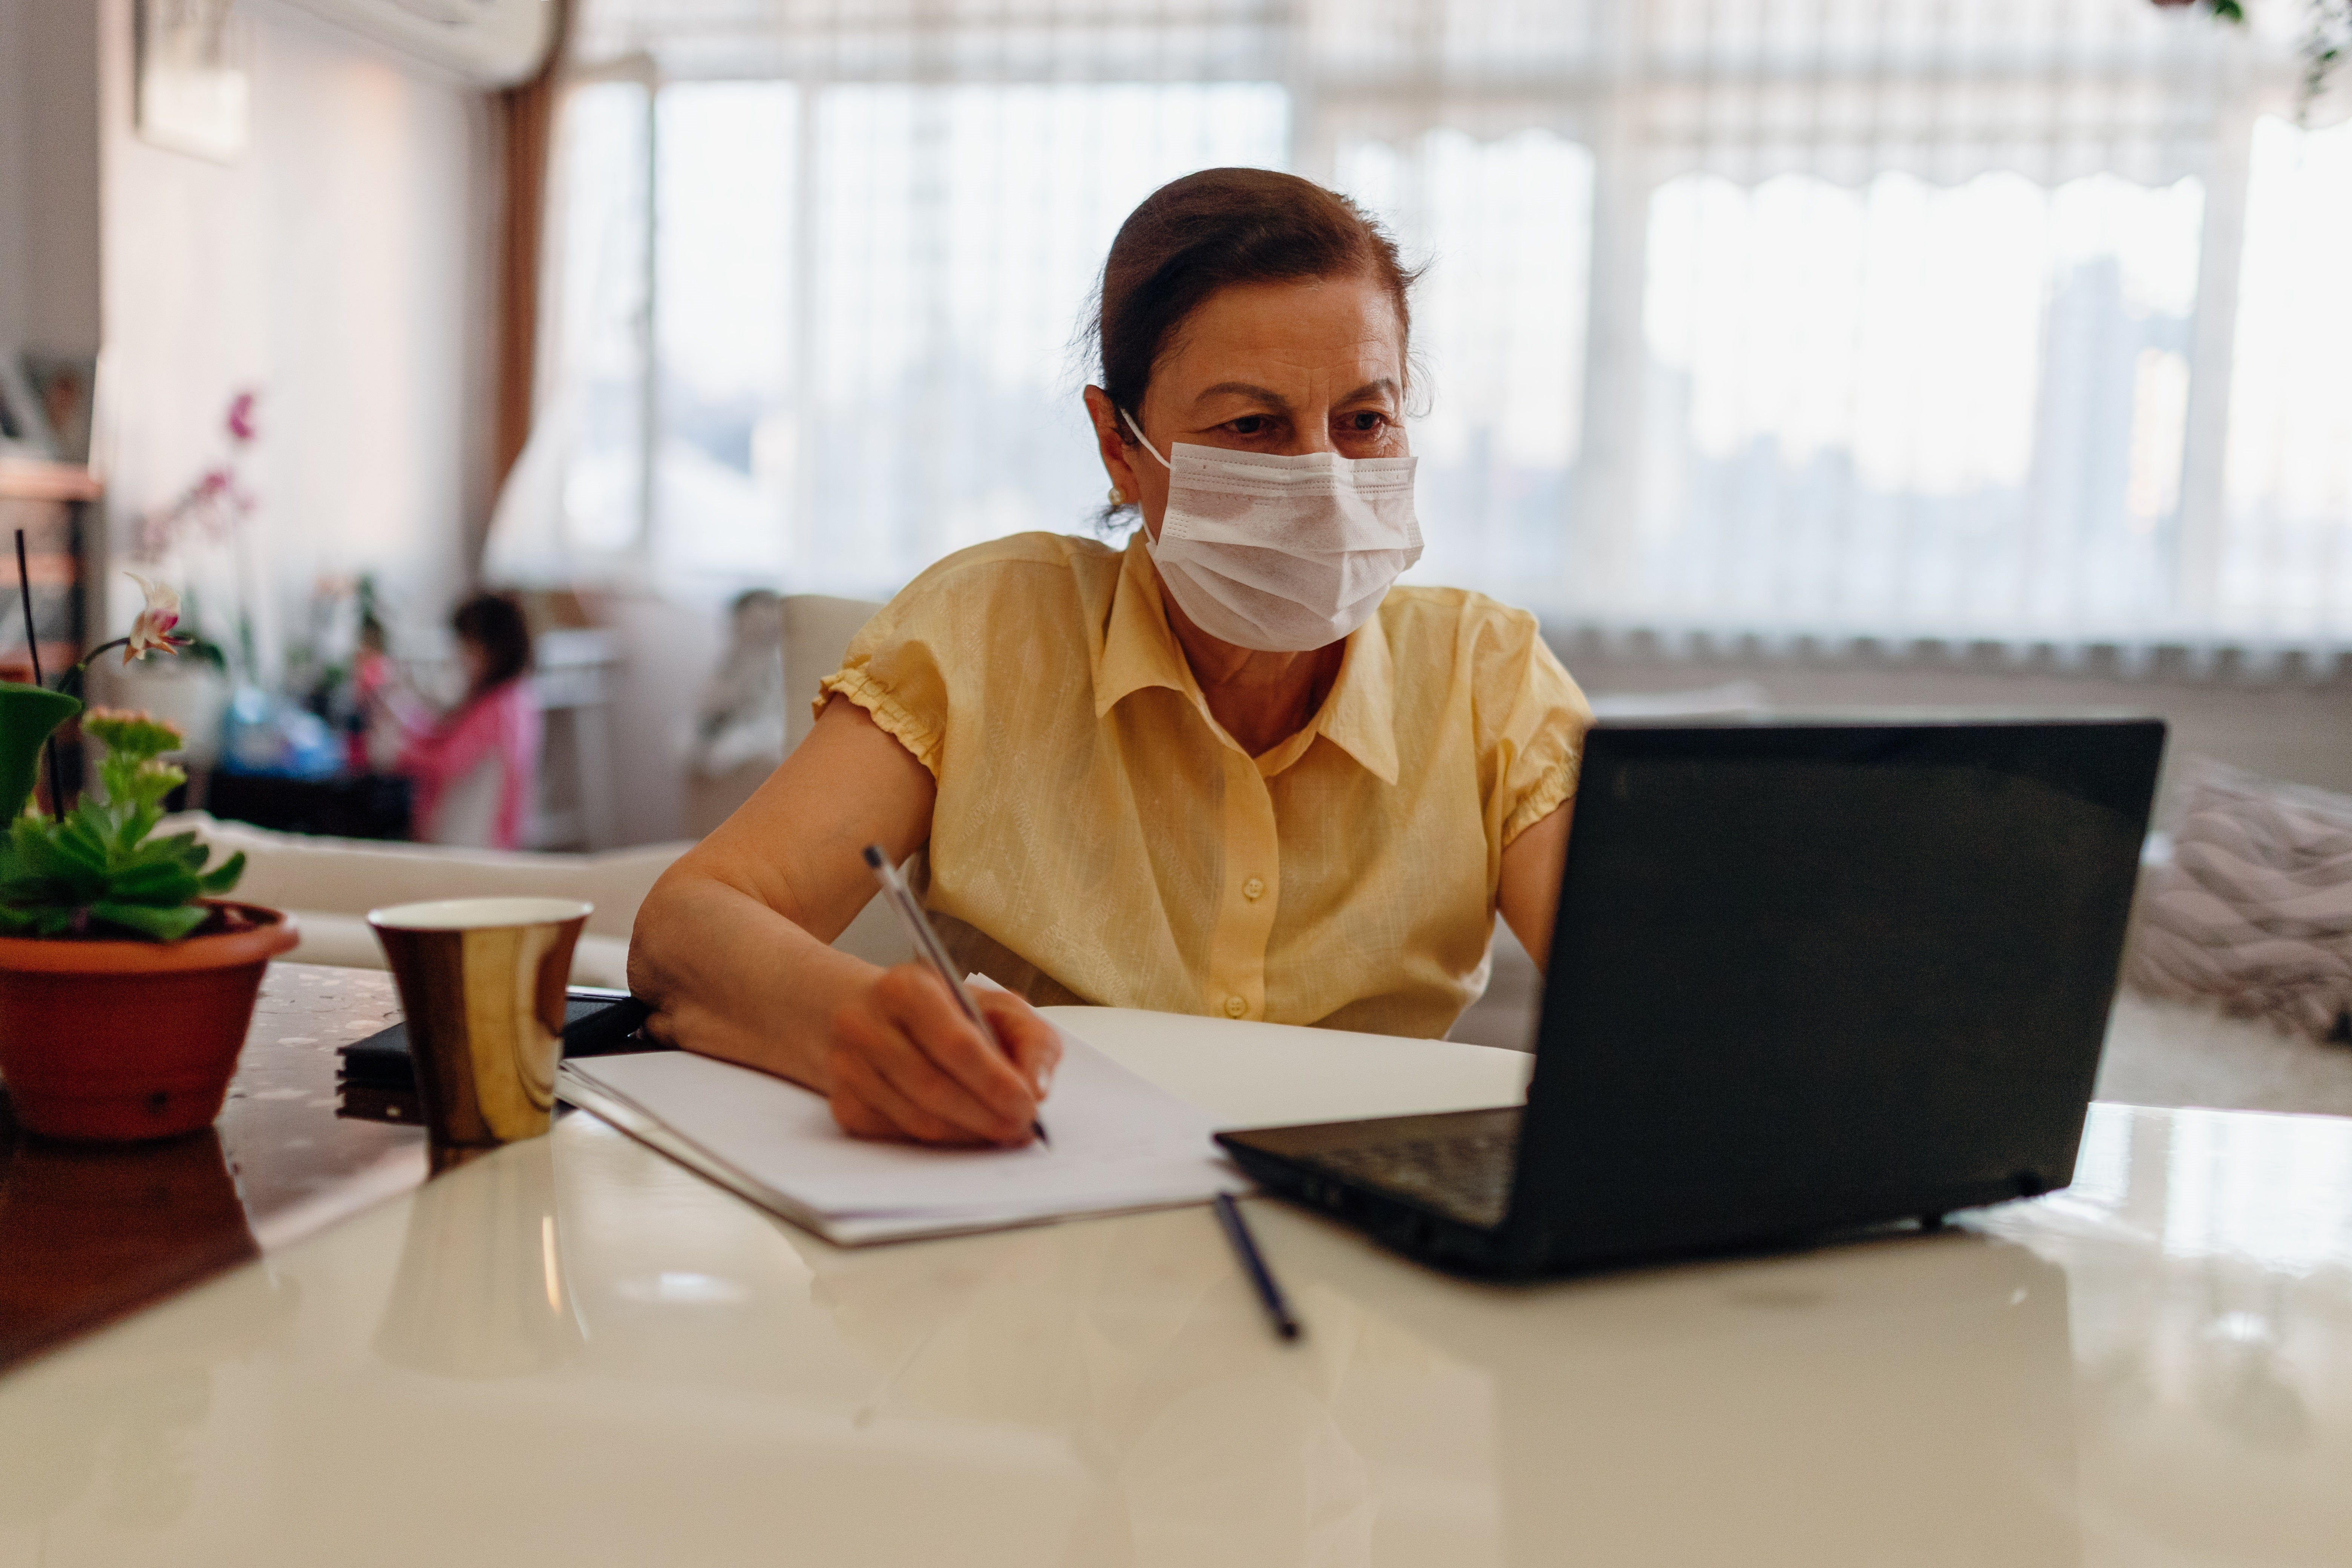 Coronavirus Pandemic Might Be Game Changer For Working At Home